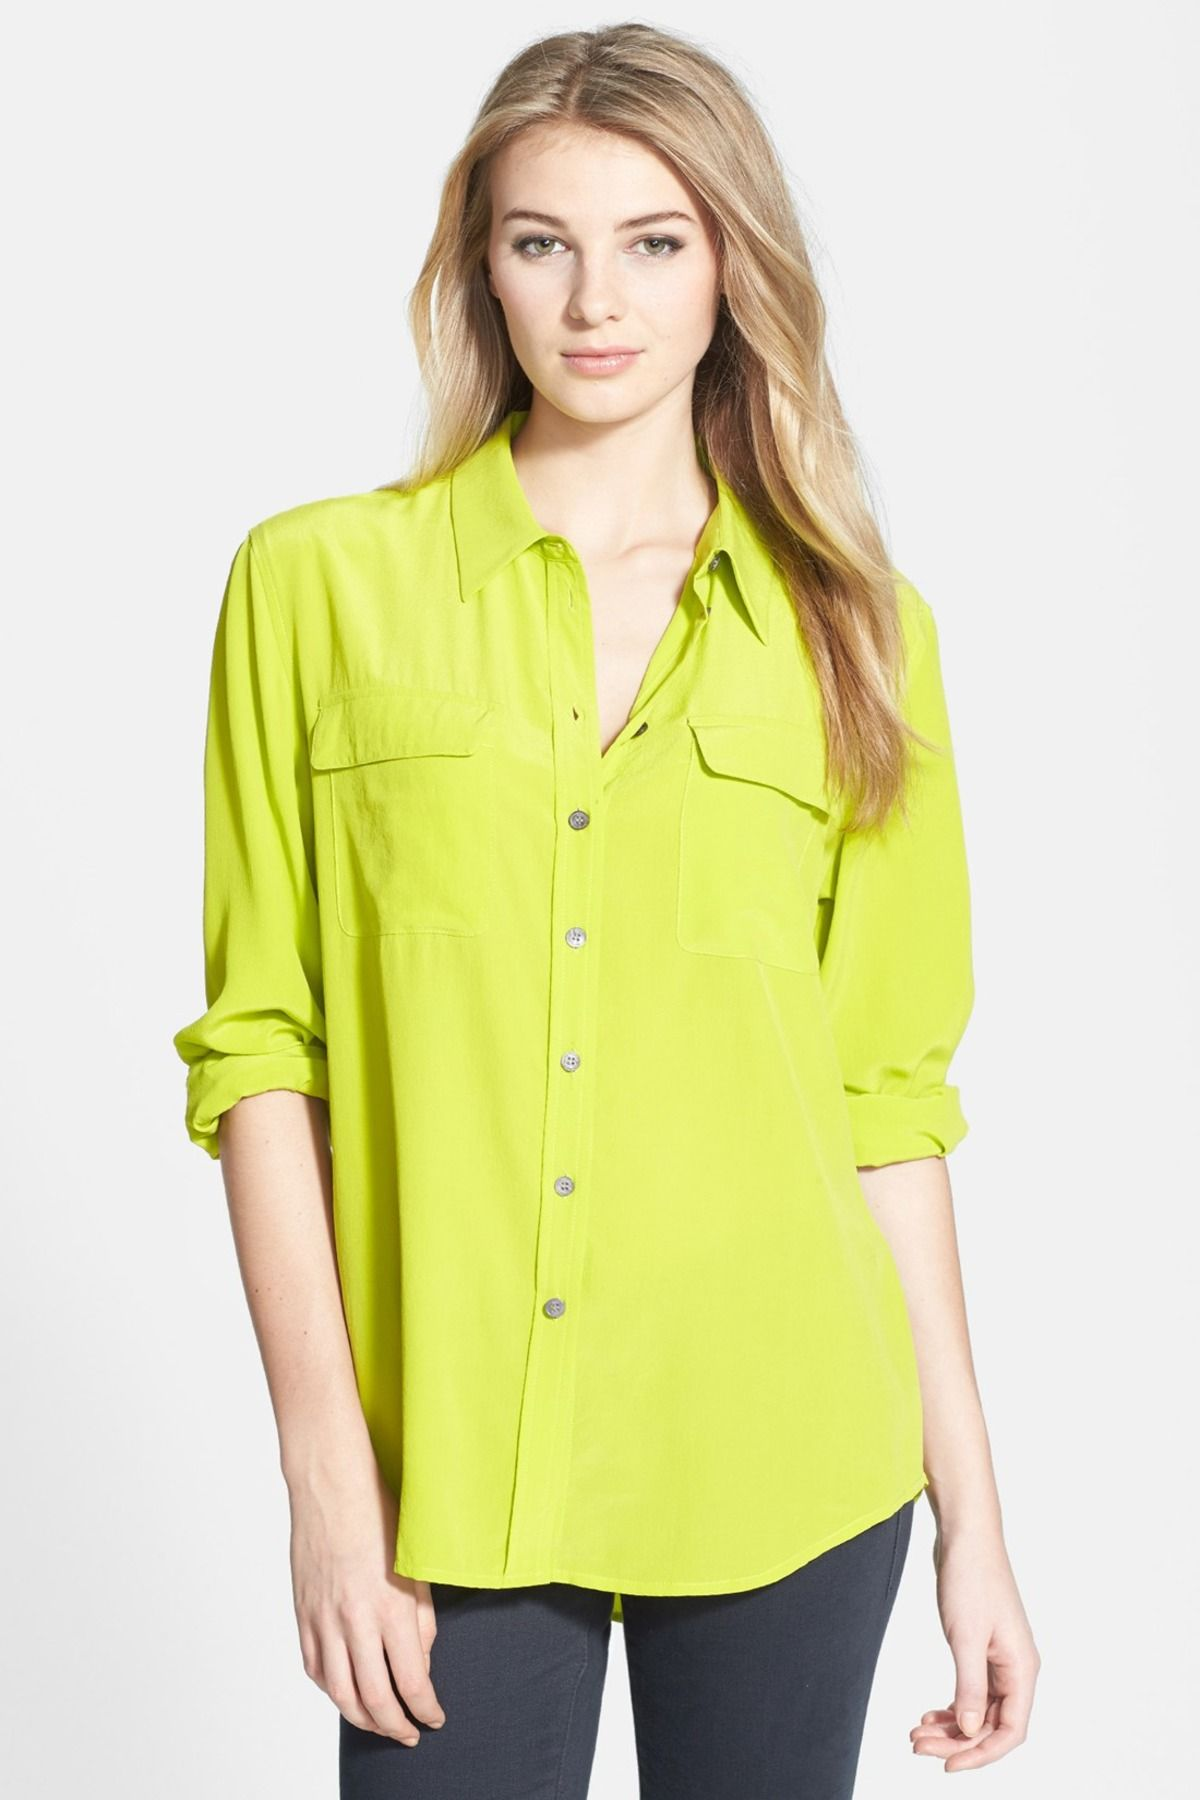 099b702efb6e68 Two by Vince Camuto Silk Utility Blouse by Two by Vince Camuto on   nordstrom rack